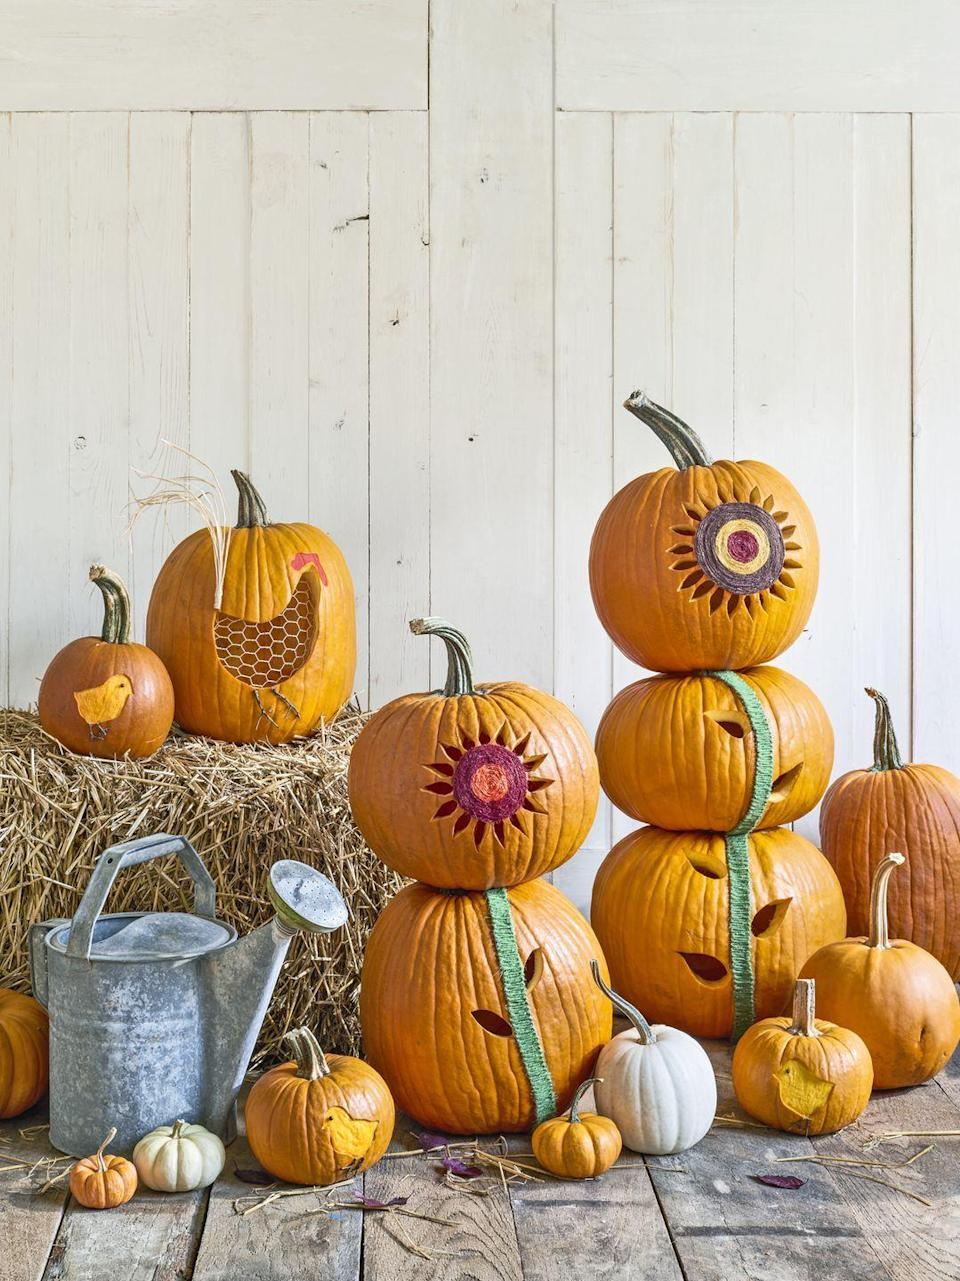 "<p>Cut a hole in the bottom of two to three pumpkins, and scoop out pulp and seeds. <a href=""http://clv.h-cdn.co/assets/downloads/1472485017_-_pumpkintemplates.pdf"" rel=""nofollow noopener"" target=""_blank"" data-ylk=""slk:Trace the templates"" class=""link rapid-noclick-resp"">Trace the templates</a> onto pumpkins. Use a knife to cut out the petals and leaves. Starting in the center of the sunflower, use hot-glue to attach different colors of twine in a spiral pattern<em>.</em> For the stalk, attach green twine in a tight zigzag pattern with hot-glue. Remove the stem from the bottom pumpkin(s); stack as shown.(No wilting sunflowers here! Use wooden skewers to secure your stack.) </p><p><a class=""link rapid-noclick-resp"" href=""https://www.amazon.com/HULISEN-Christmas-Jute-Twine-Embellishments/dp/B078J3K9HG/ref=sr_1_31_sspa?tag=syn-yahoo-20&ascsubtag=%5Bartid%7C10050.g.1350%5Bsrc%7Cyahoo-us"" rel=""nofollow noopener"" target=""_blank"" data-ylk=""slk:SHOP COLORED TWINE"">SHOP COLORED TWINE</a><br></p>"